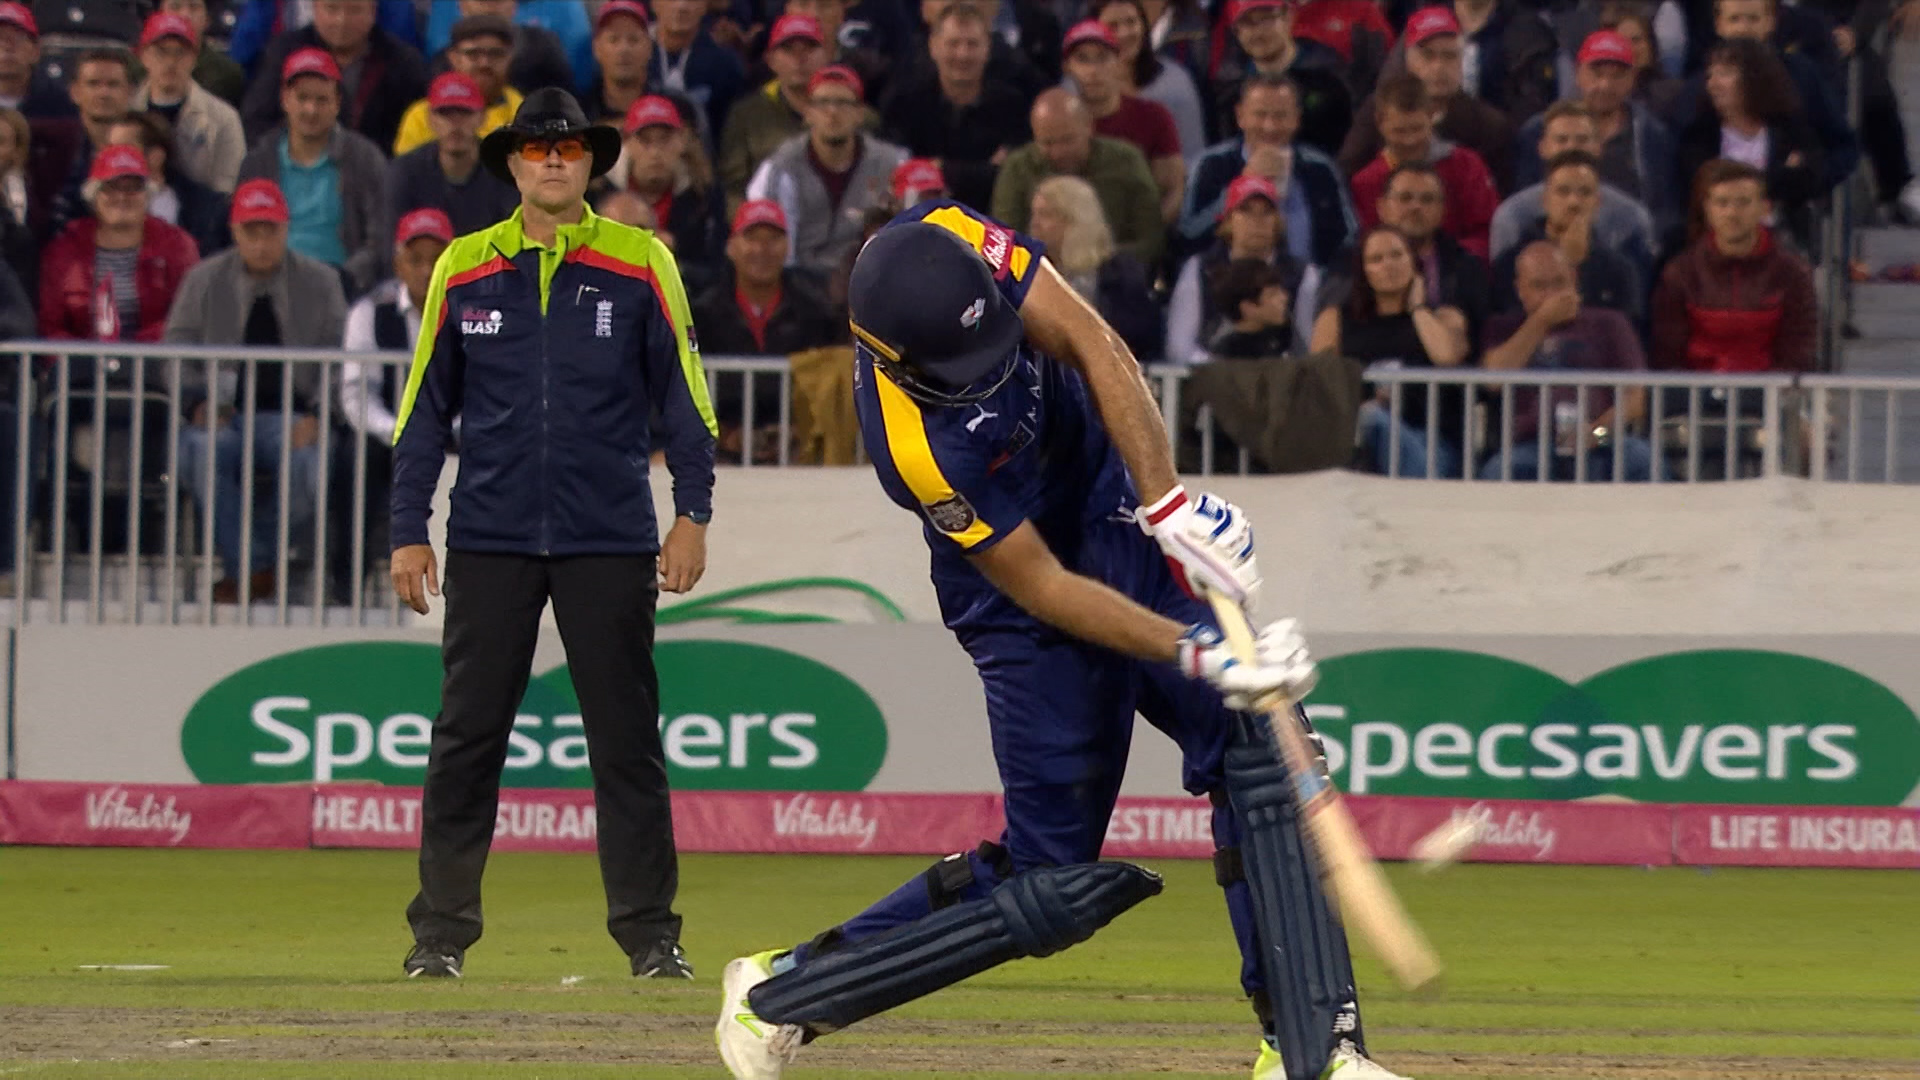 Lancashire Lightning v Yorkshire Vikings: 'It's gone miles!' - Plunkett hits massive six